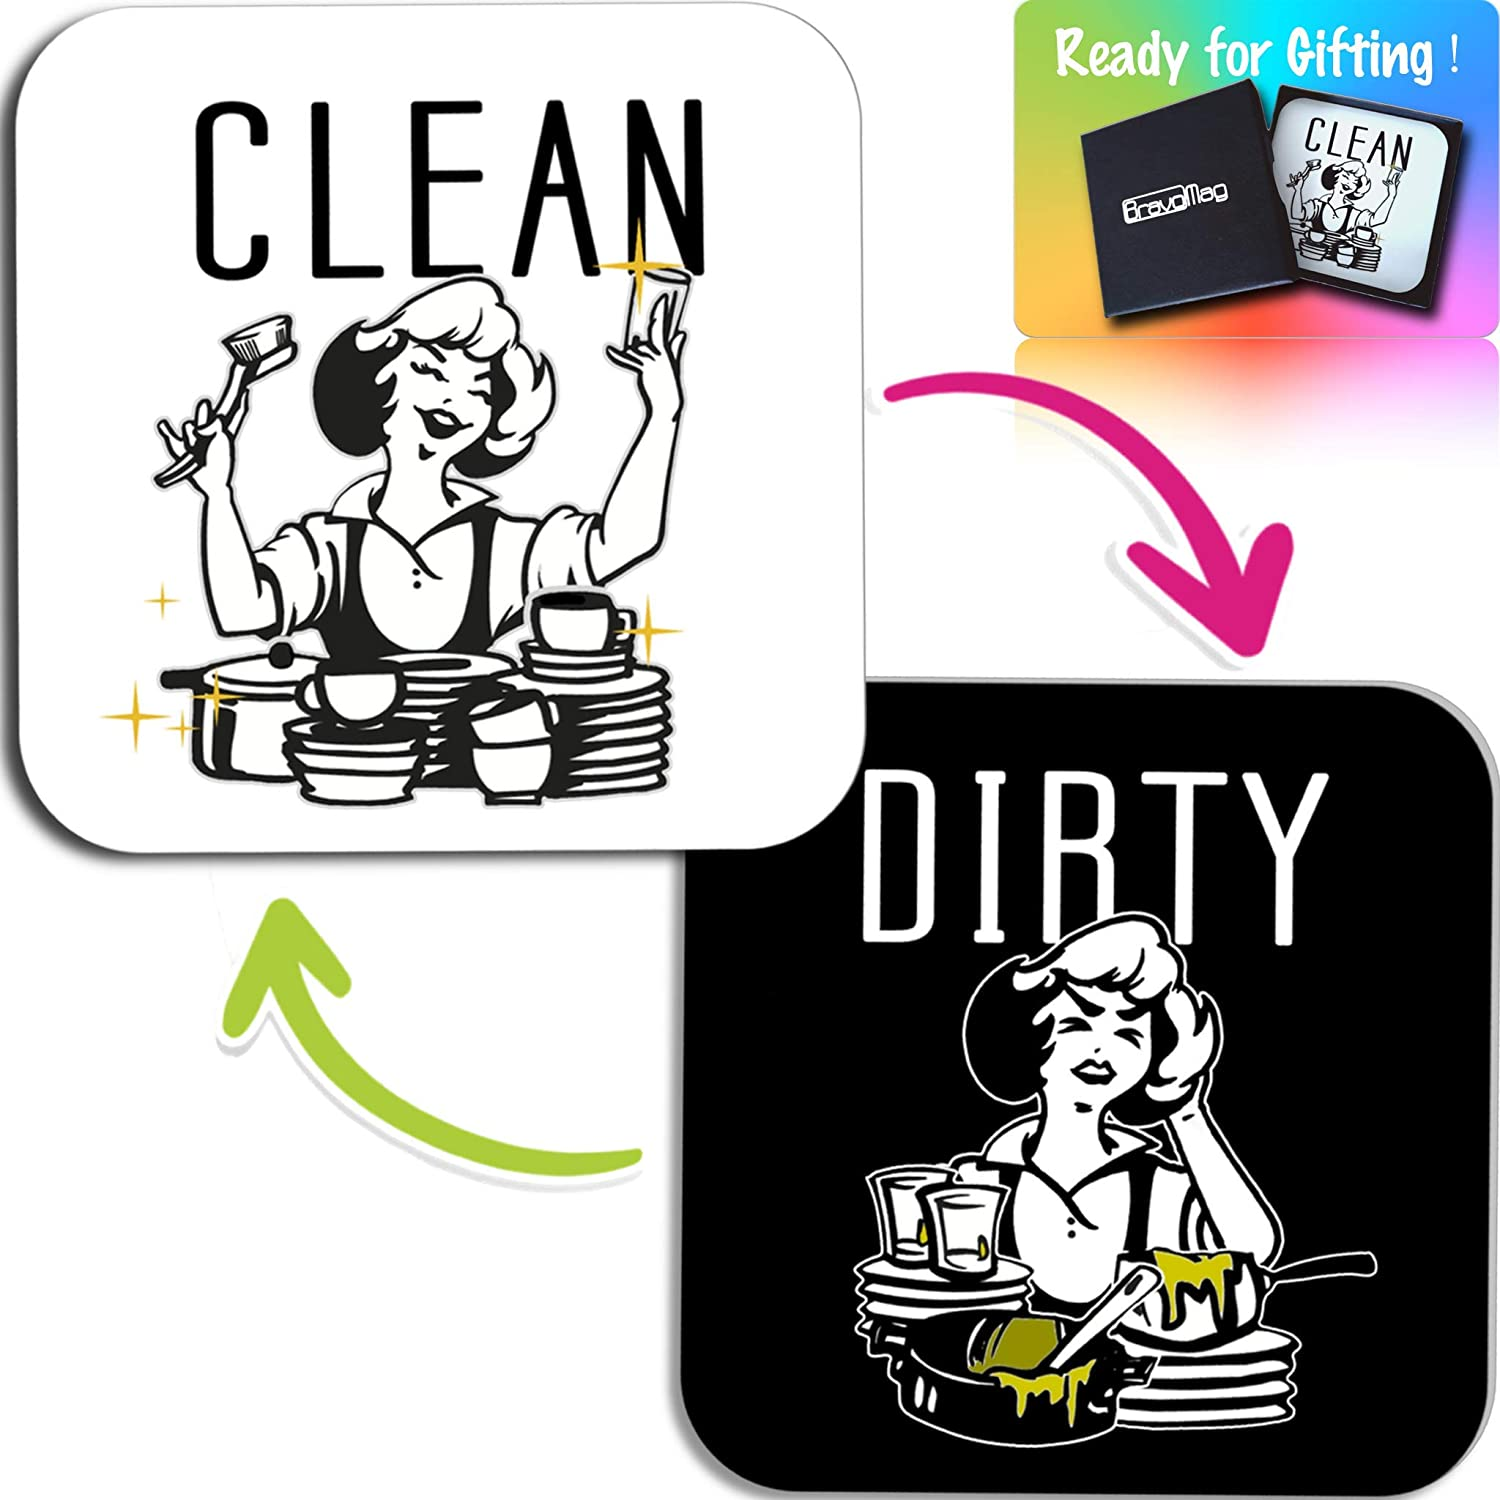 BravoMag Dishwasher Magnet Clean Dirty - Flip Sign, Double Sided - Black White - Funny Gift - 3.2 x 3.2 Inch